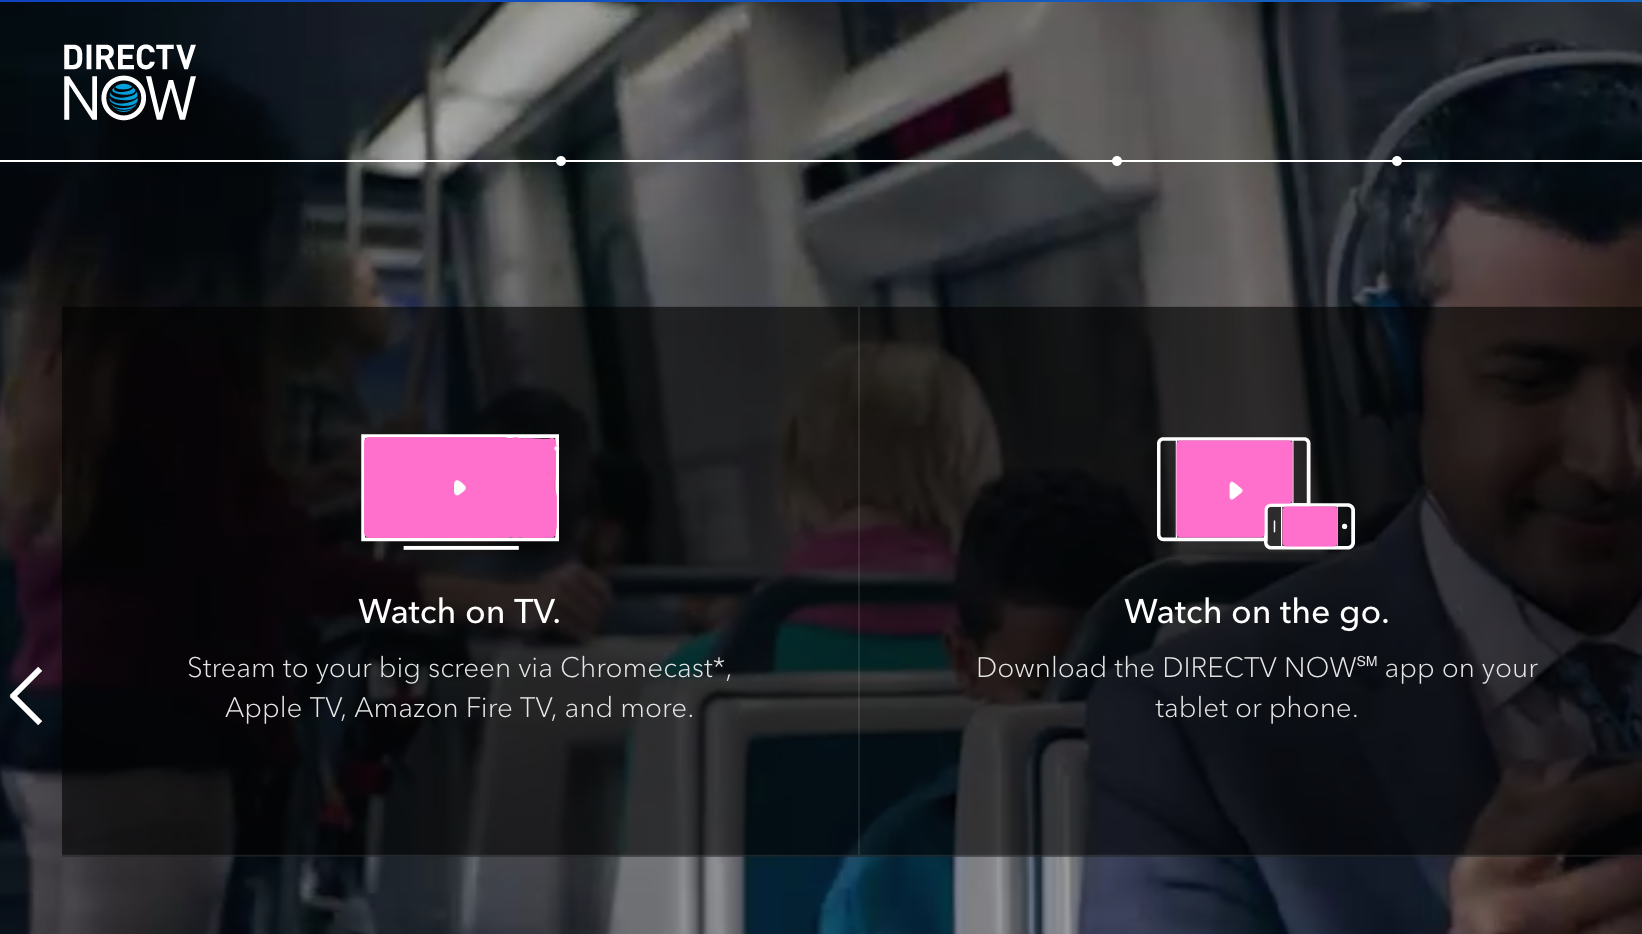 T-Mobile Tries To Get Under AT&T's Skin By Offering 12 Months Of DirecTV Now For Free